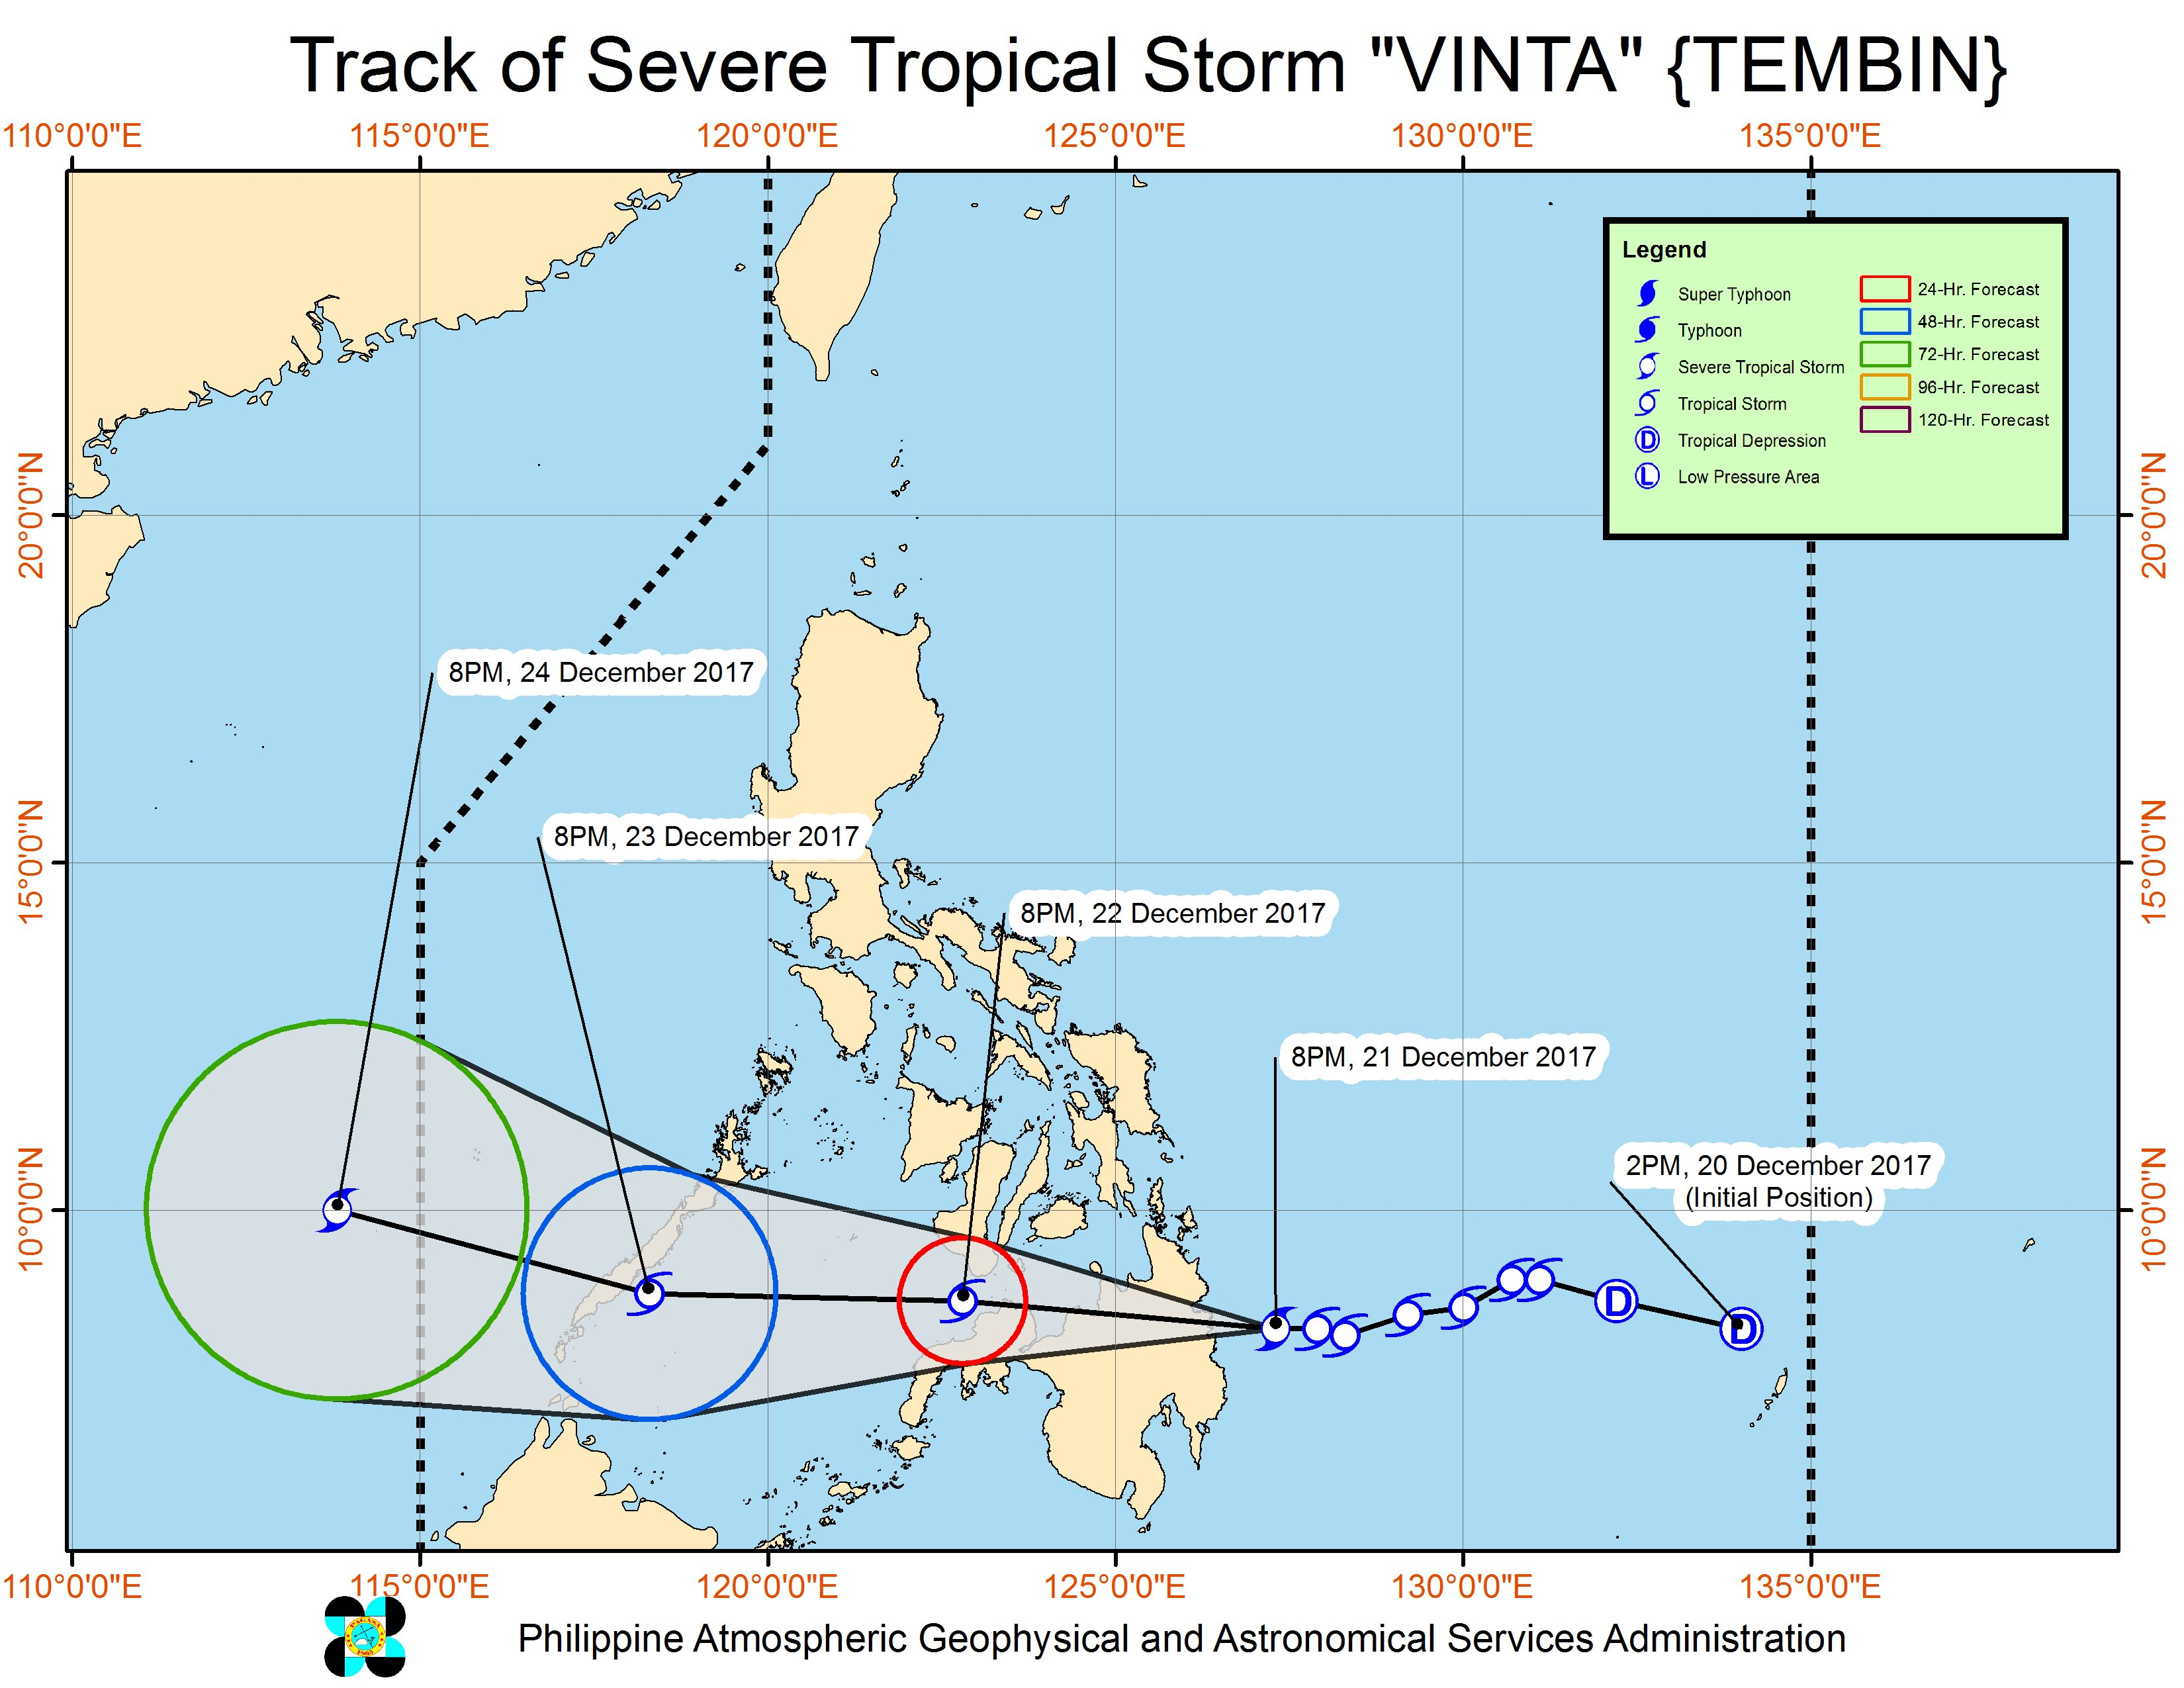 Forecast track of Severe Tropical Storm Vinta as of December 21, 11 pm. Image courtesy of PAGASA